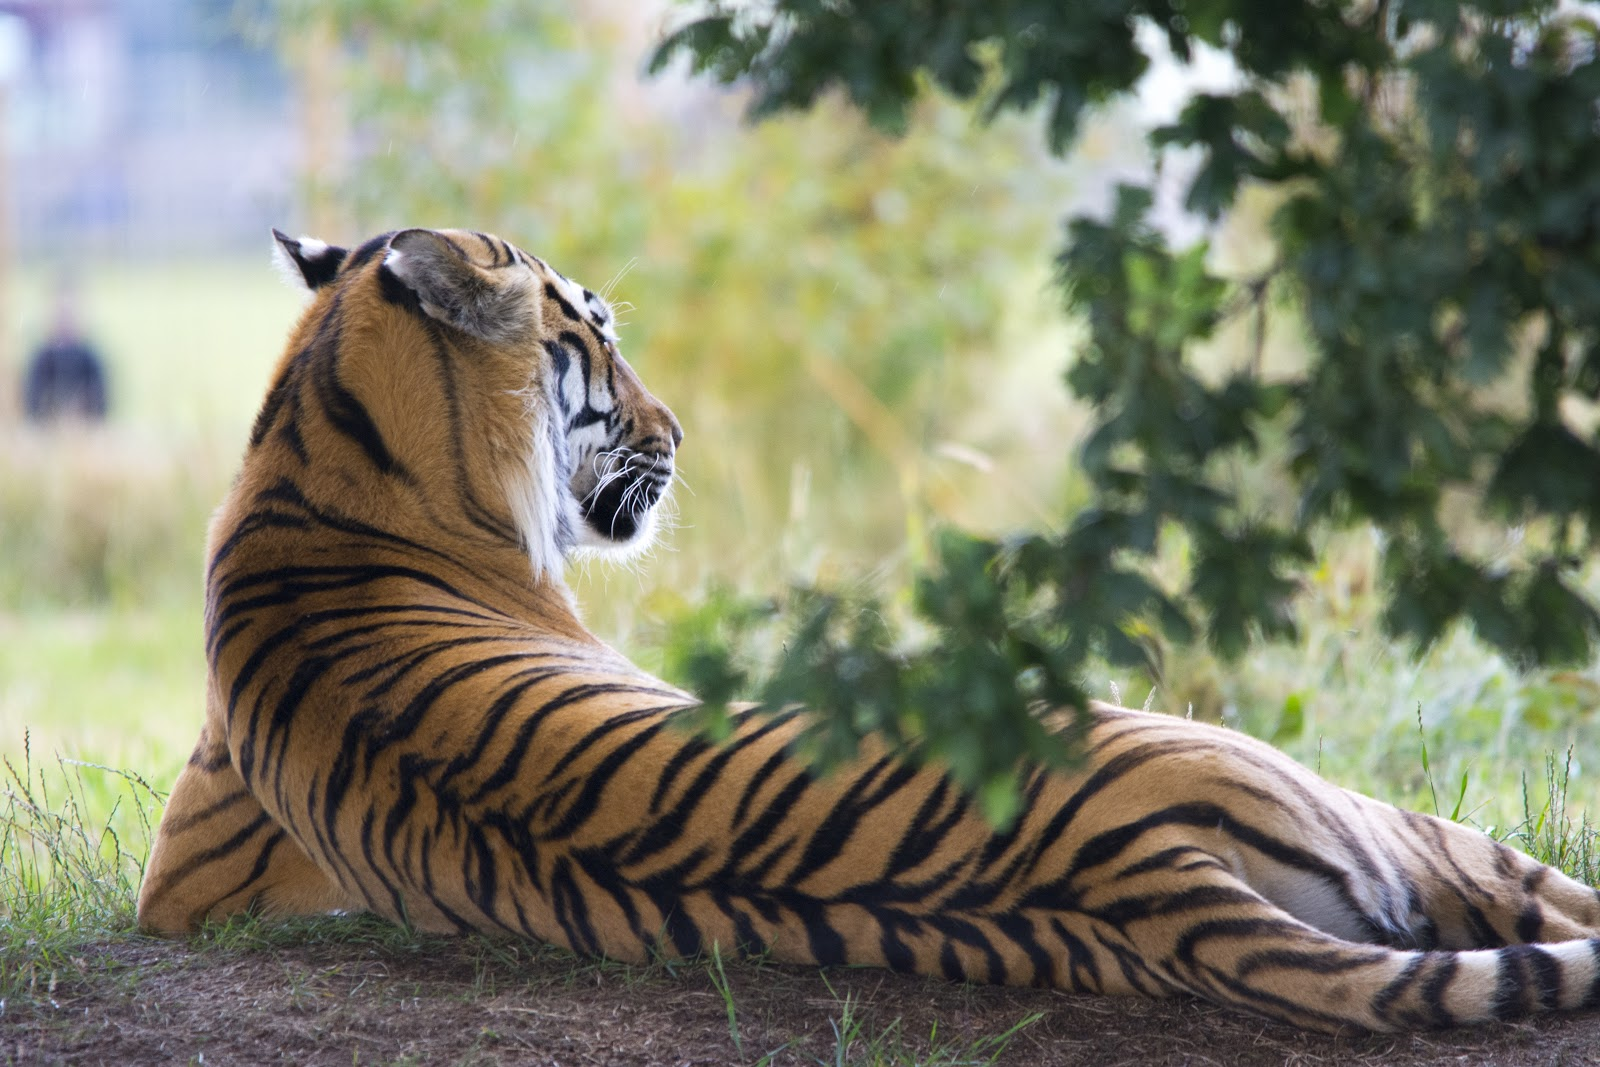 tiger-lying-down-during-daytime-pictures